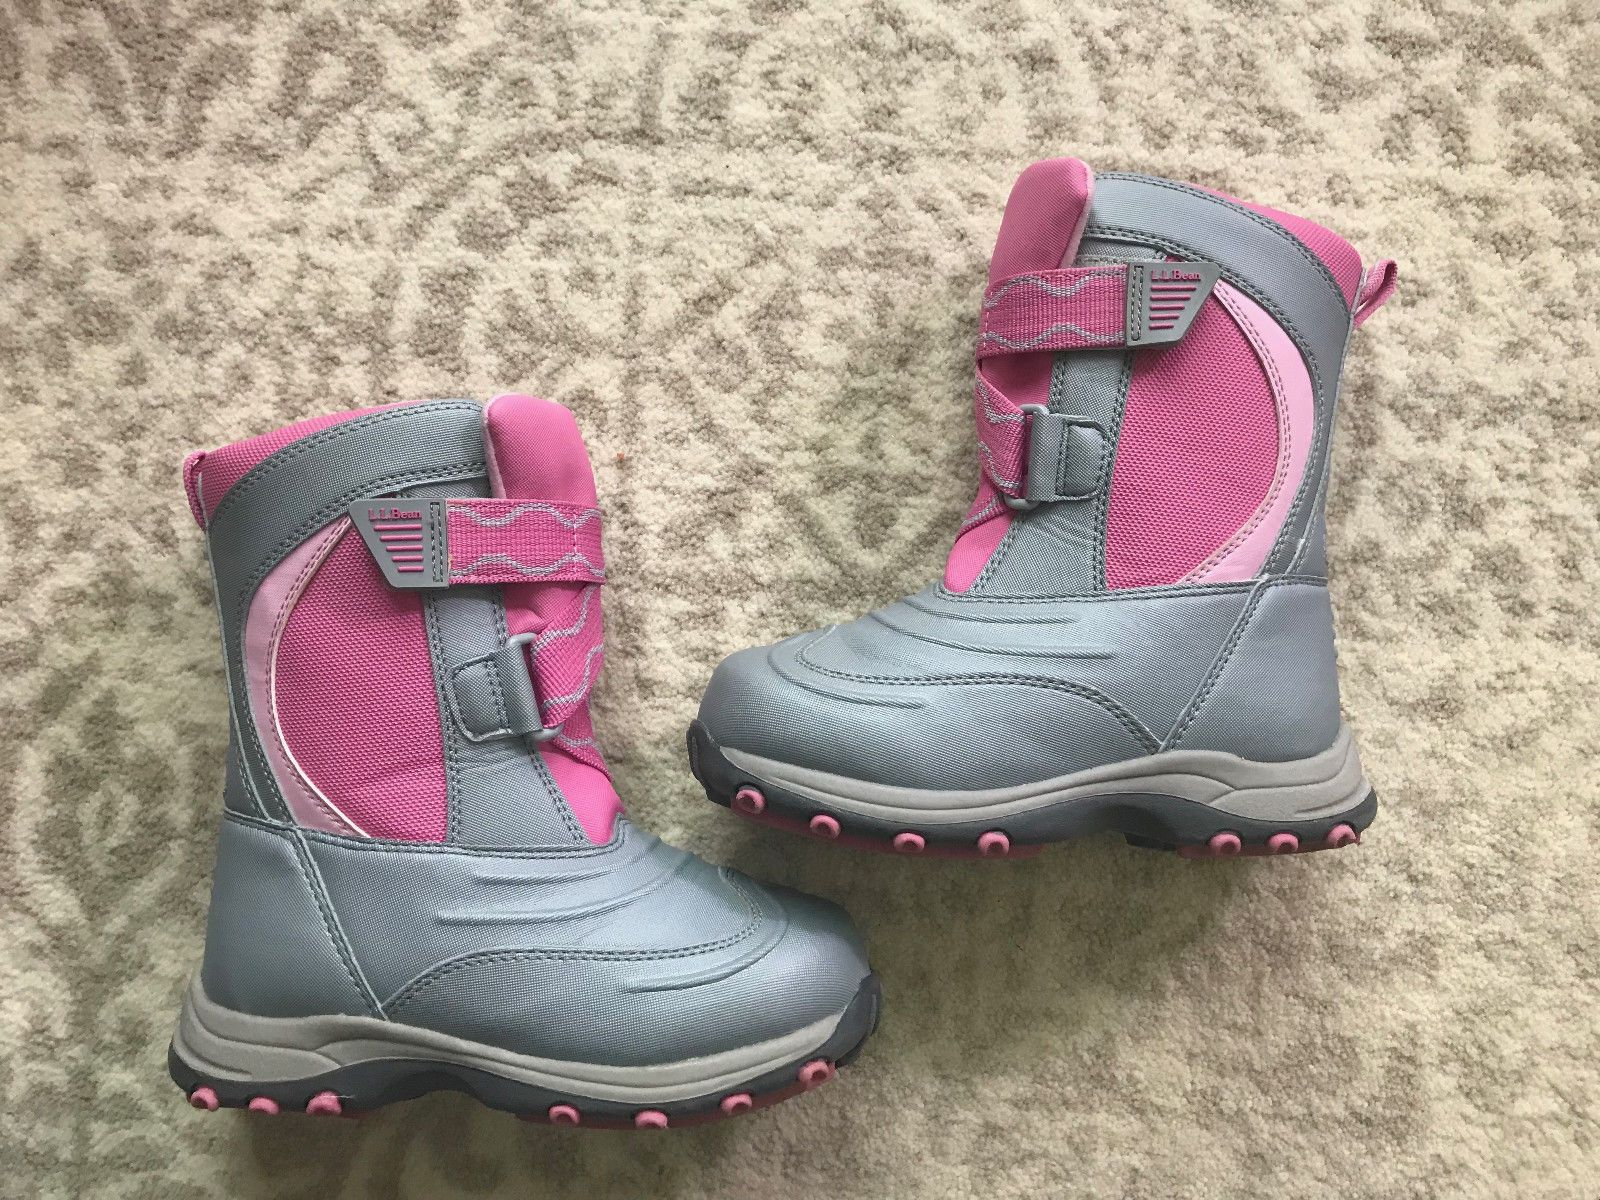 f0fcb2d042ab LL Bean Girls Kids Sz 11 Wild Orchid Pink Snow Tread Boots Excellent  Condition